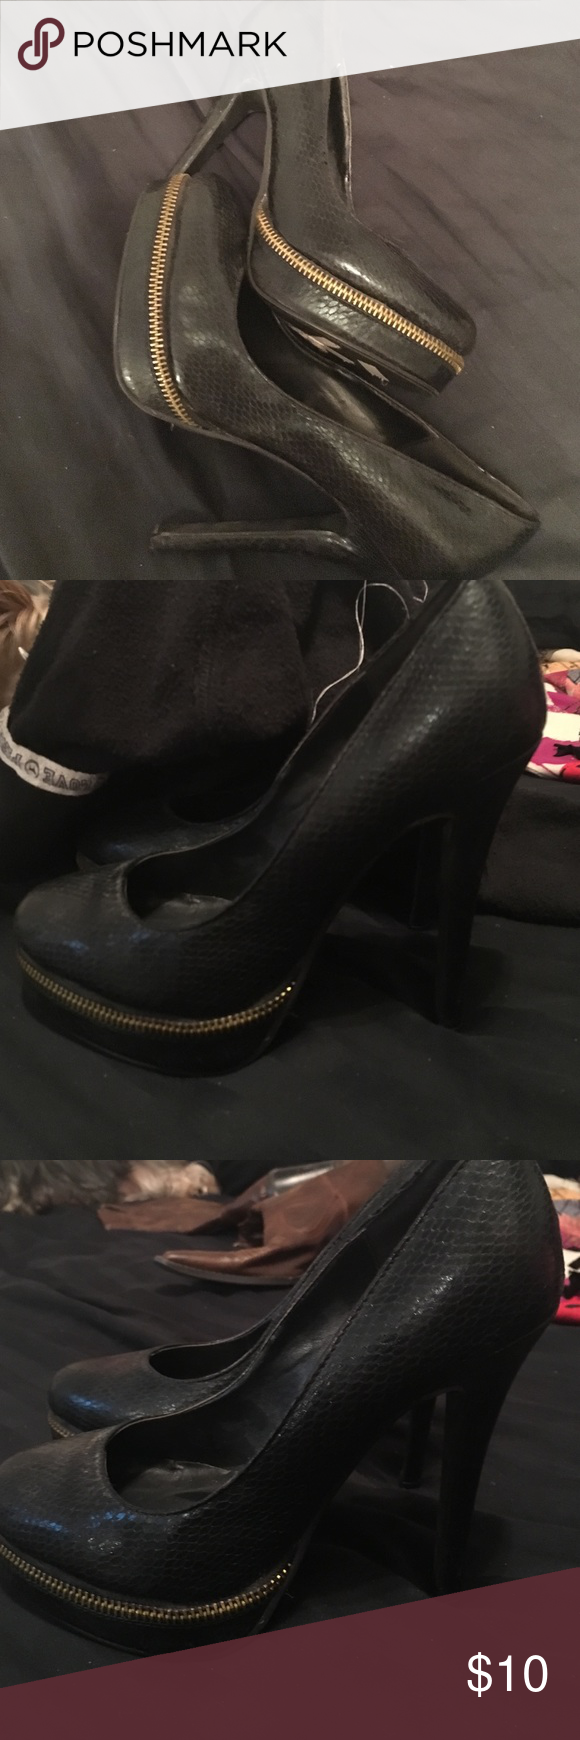 Amazing Charlotte Russe Heels Great show. Worn a few times. Any questions. Please ask. Charlotte Russe Shoes Heels